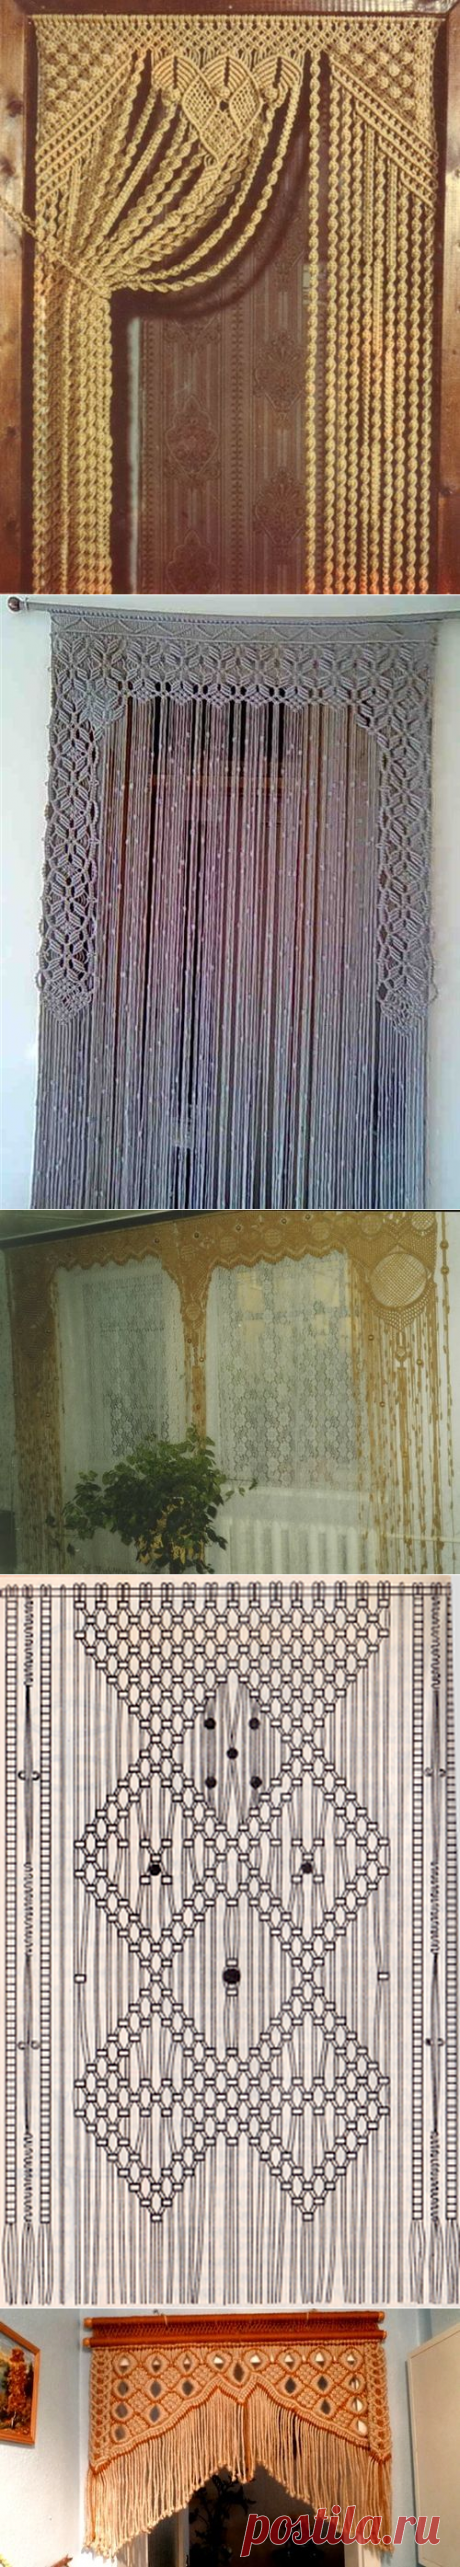 Macrame curtains on windows and doors: weaving by the hands